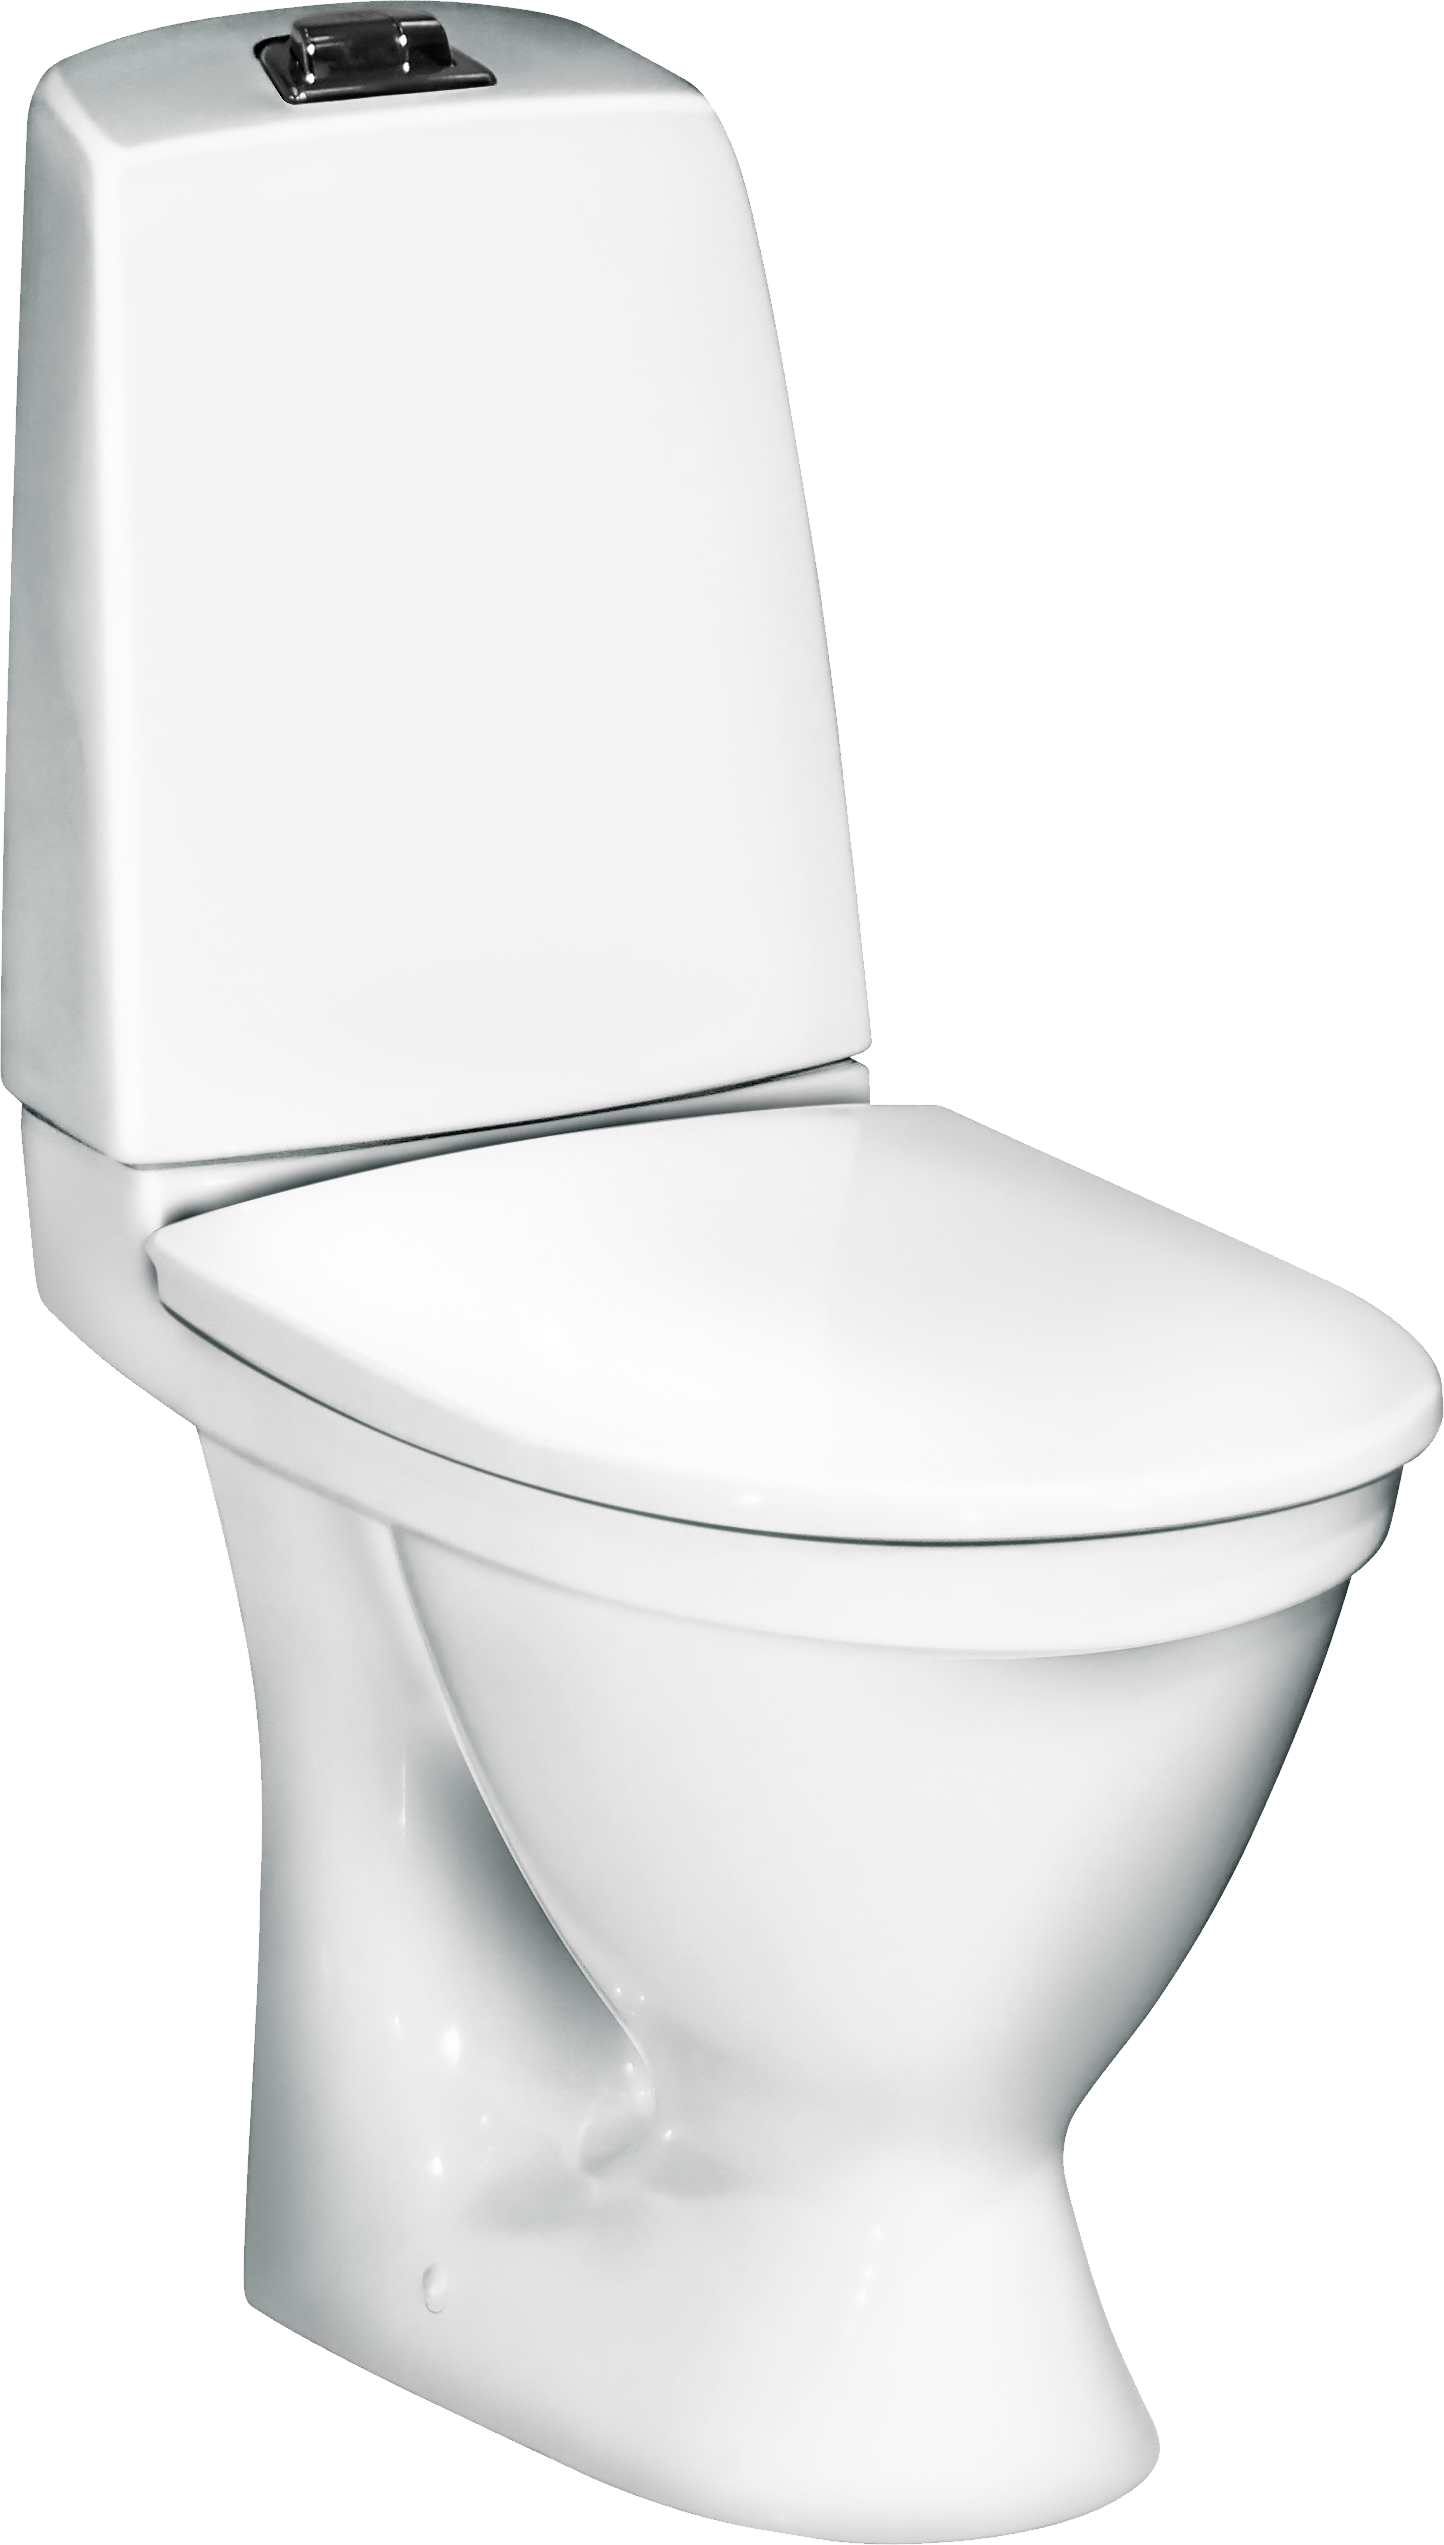 toilet png images are download crazypngm crazy png images download #29197